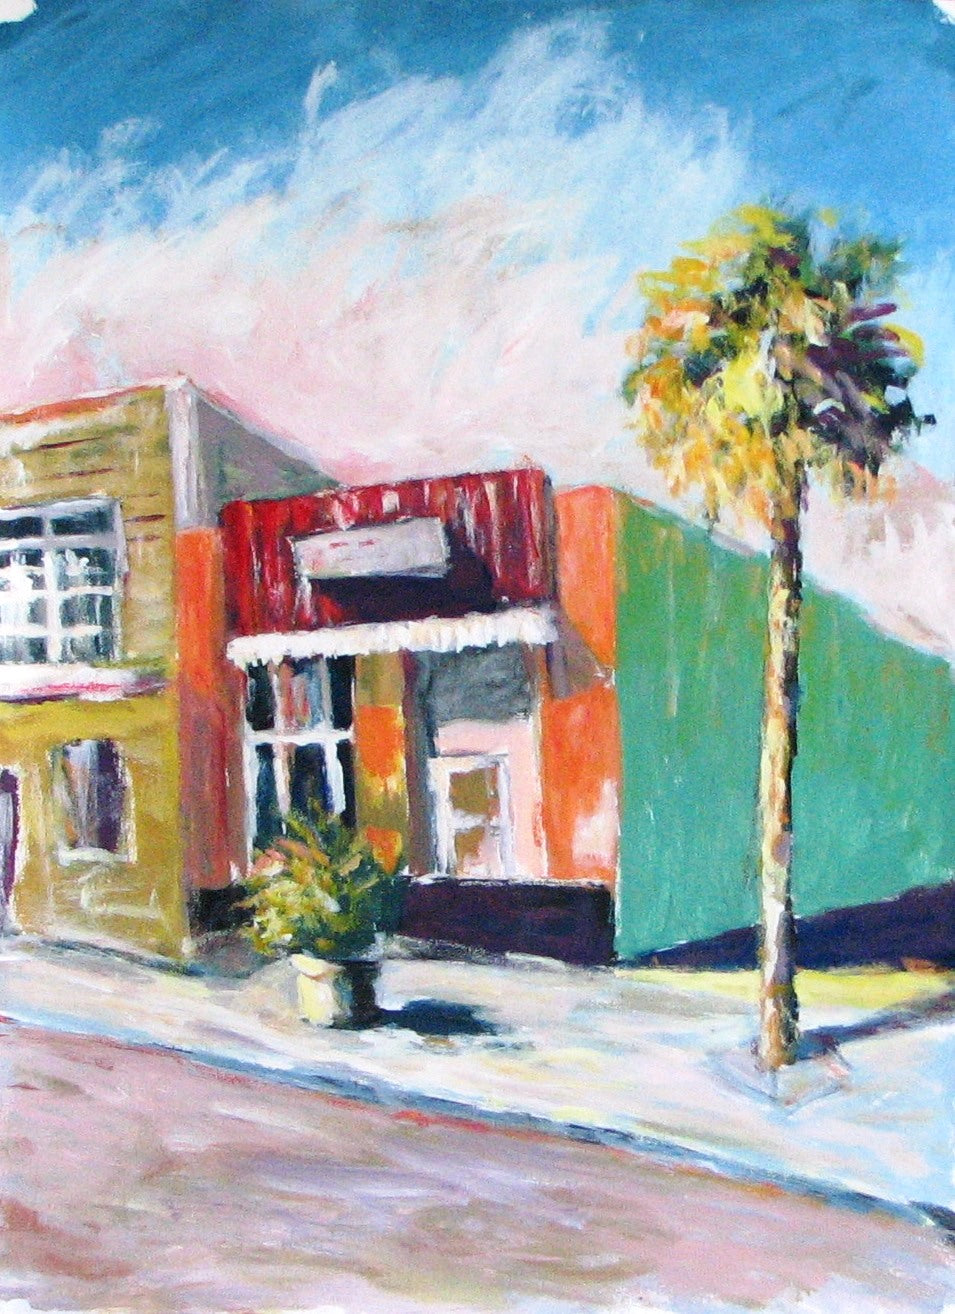 Caleb, 'Sidewalk Shops' Original Acrylic Painting on Rag Paper 22x30